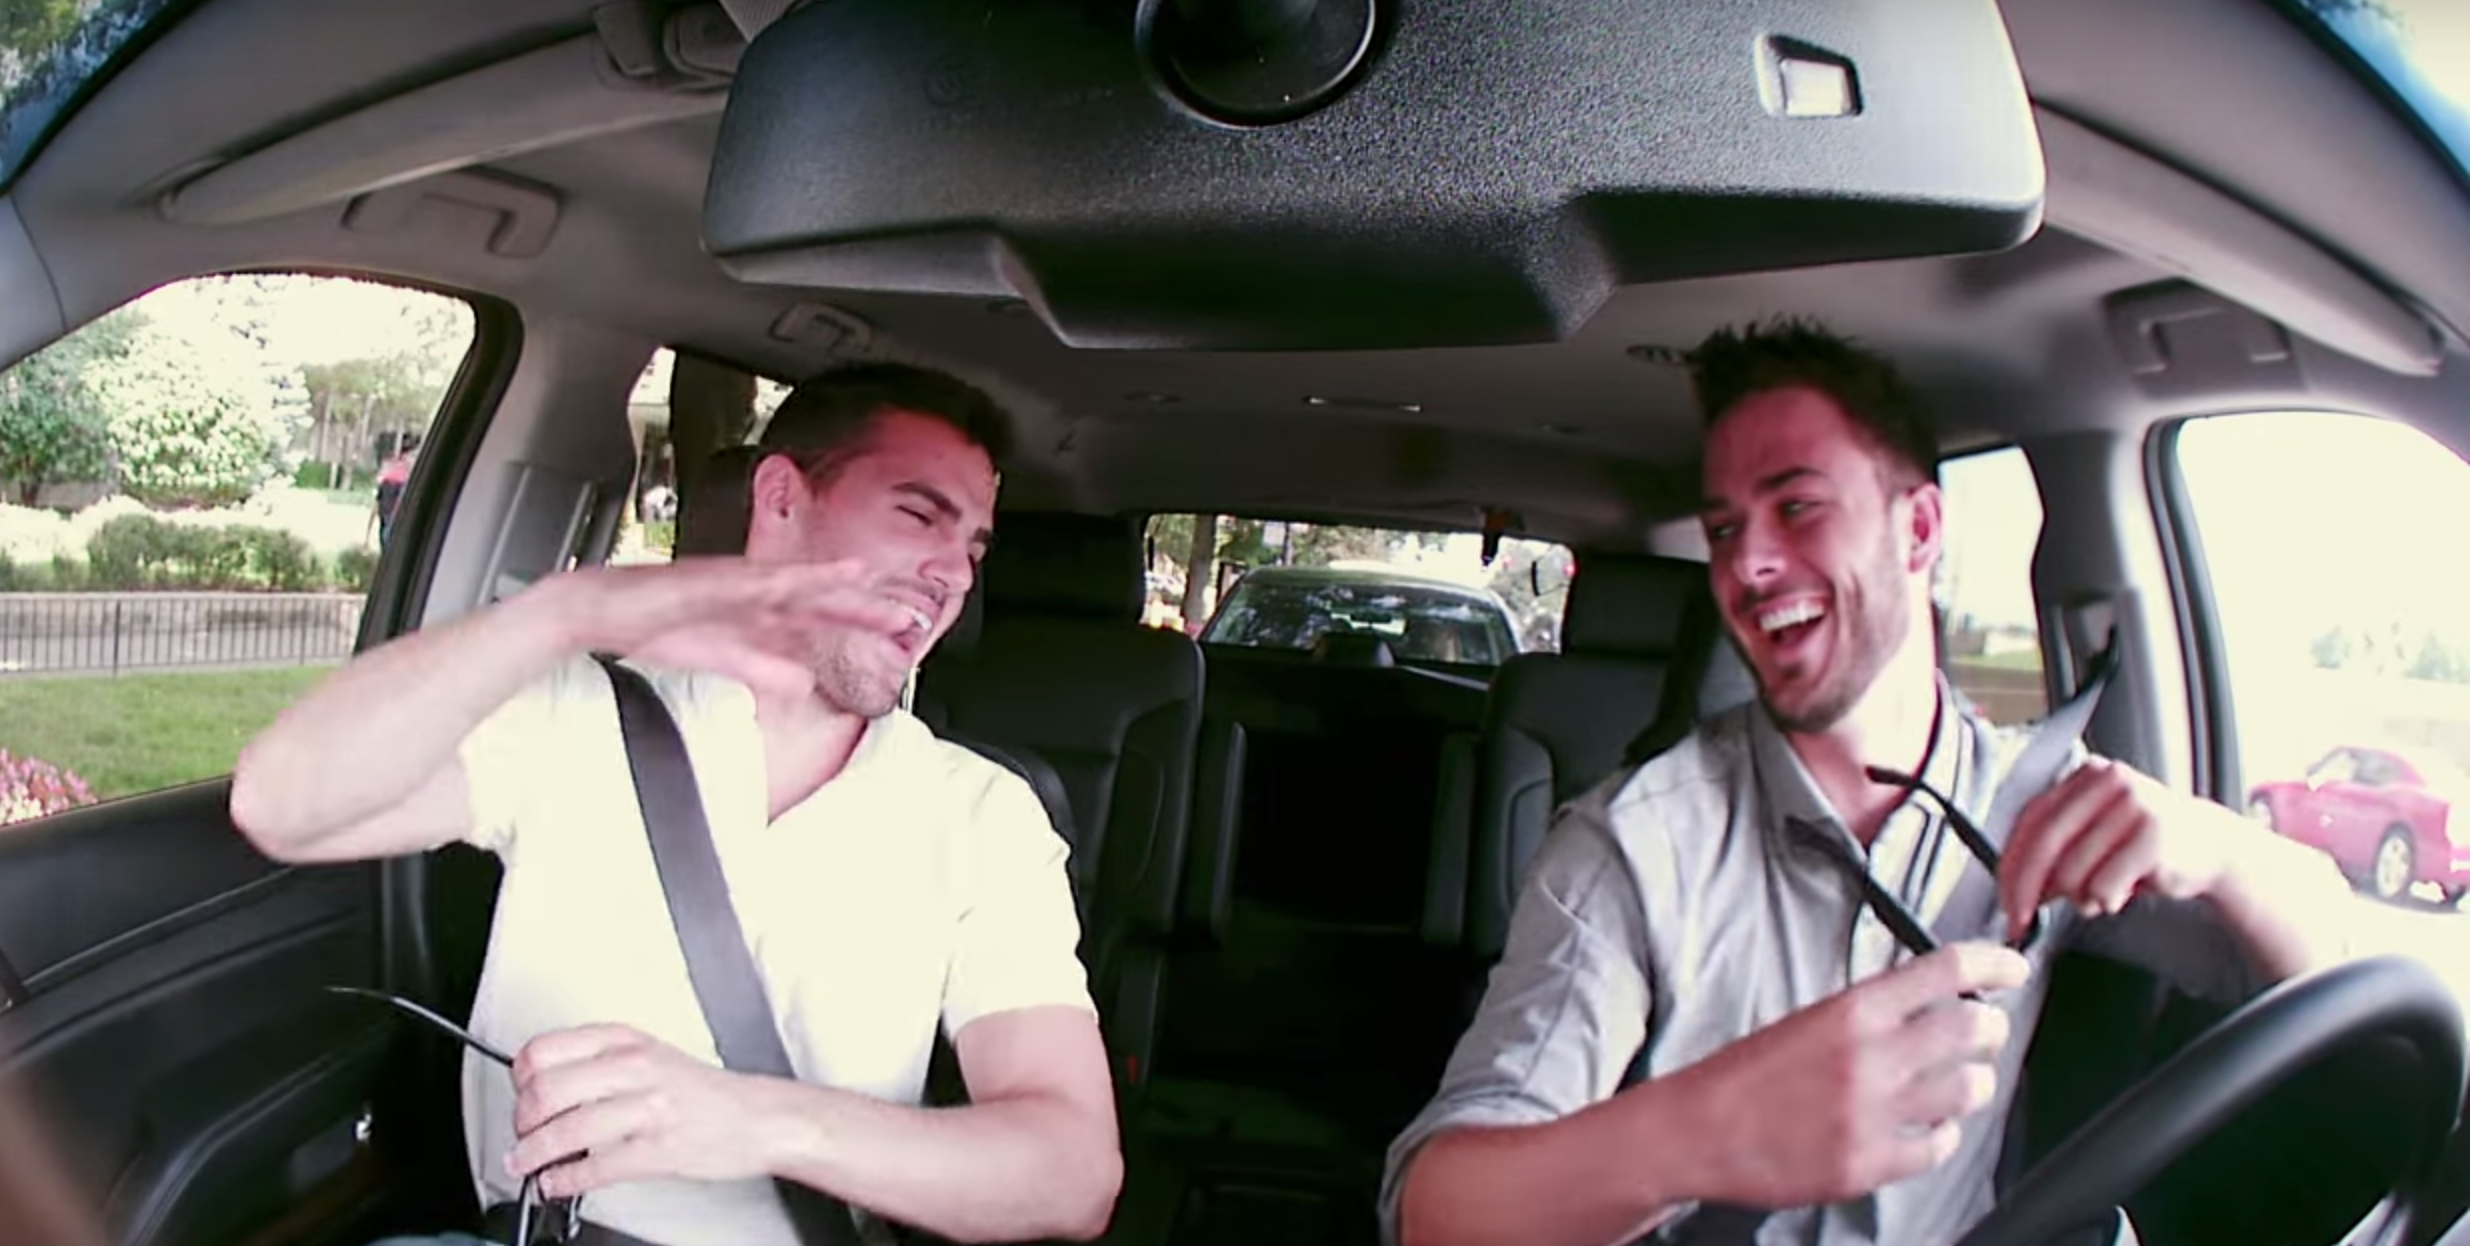 Cubs' Kris Bryant goes undercover as a Lyft driver